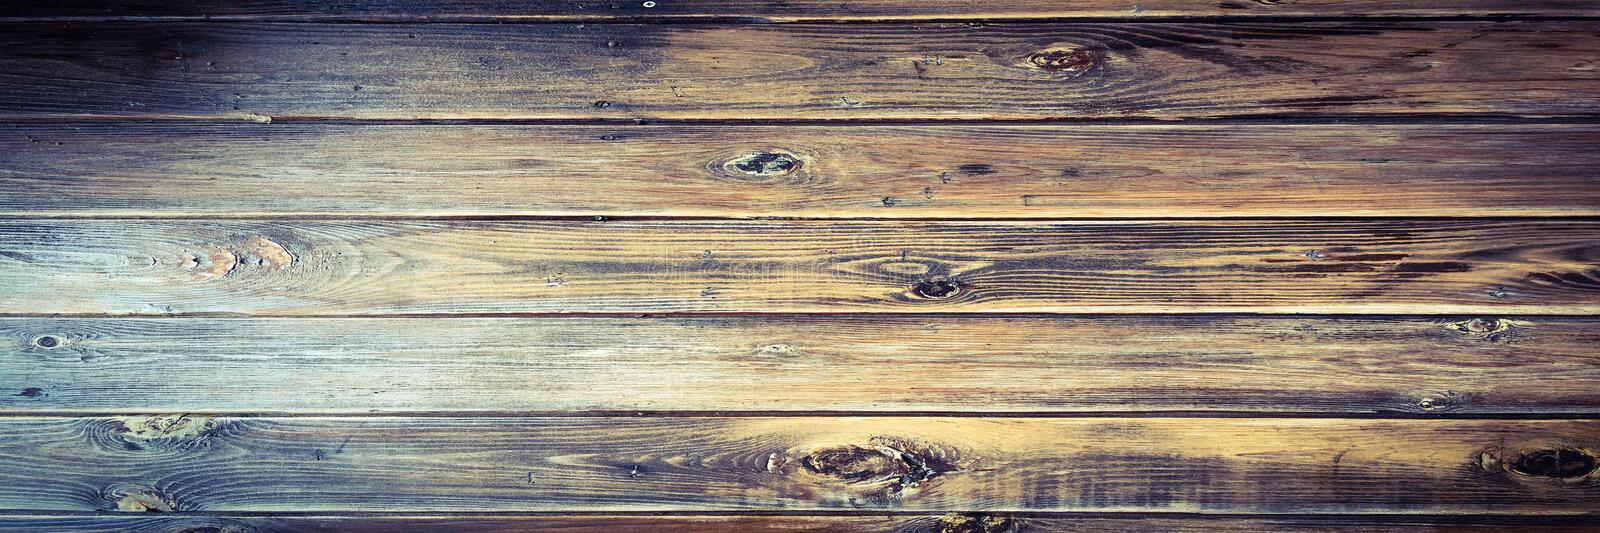 Wood texture background, brown wood planks. Grunge washed wood wall pattern. Wood texture background, brown wood planks. Grunge washed wood wall pattern stock photo